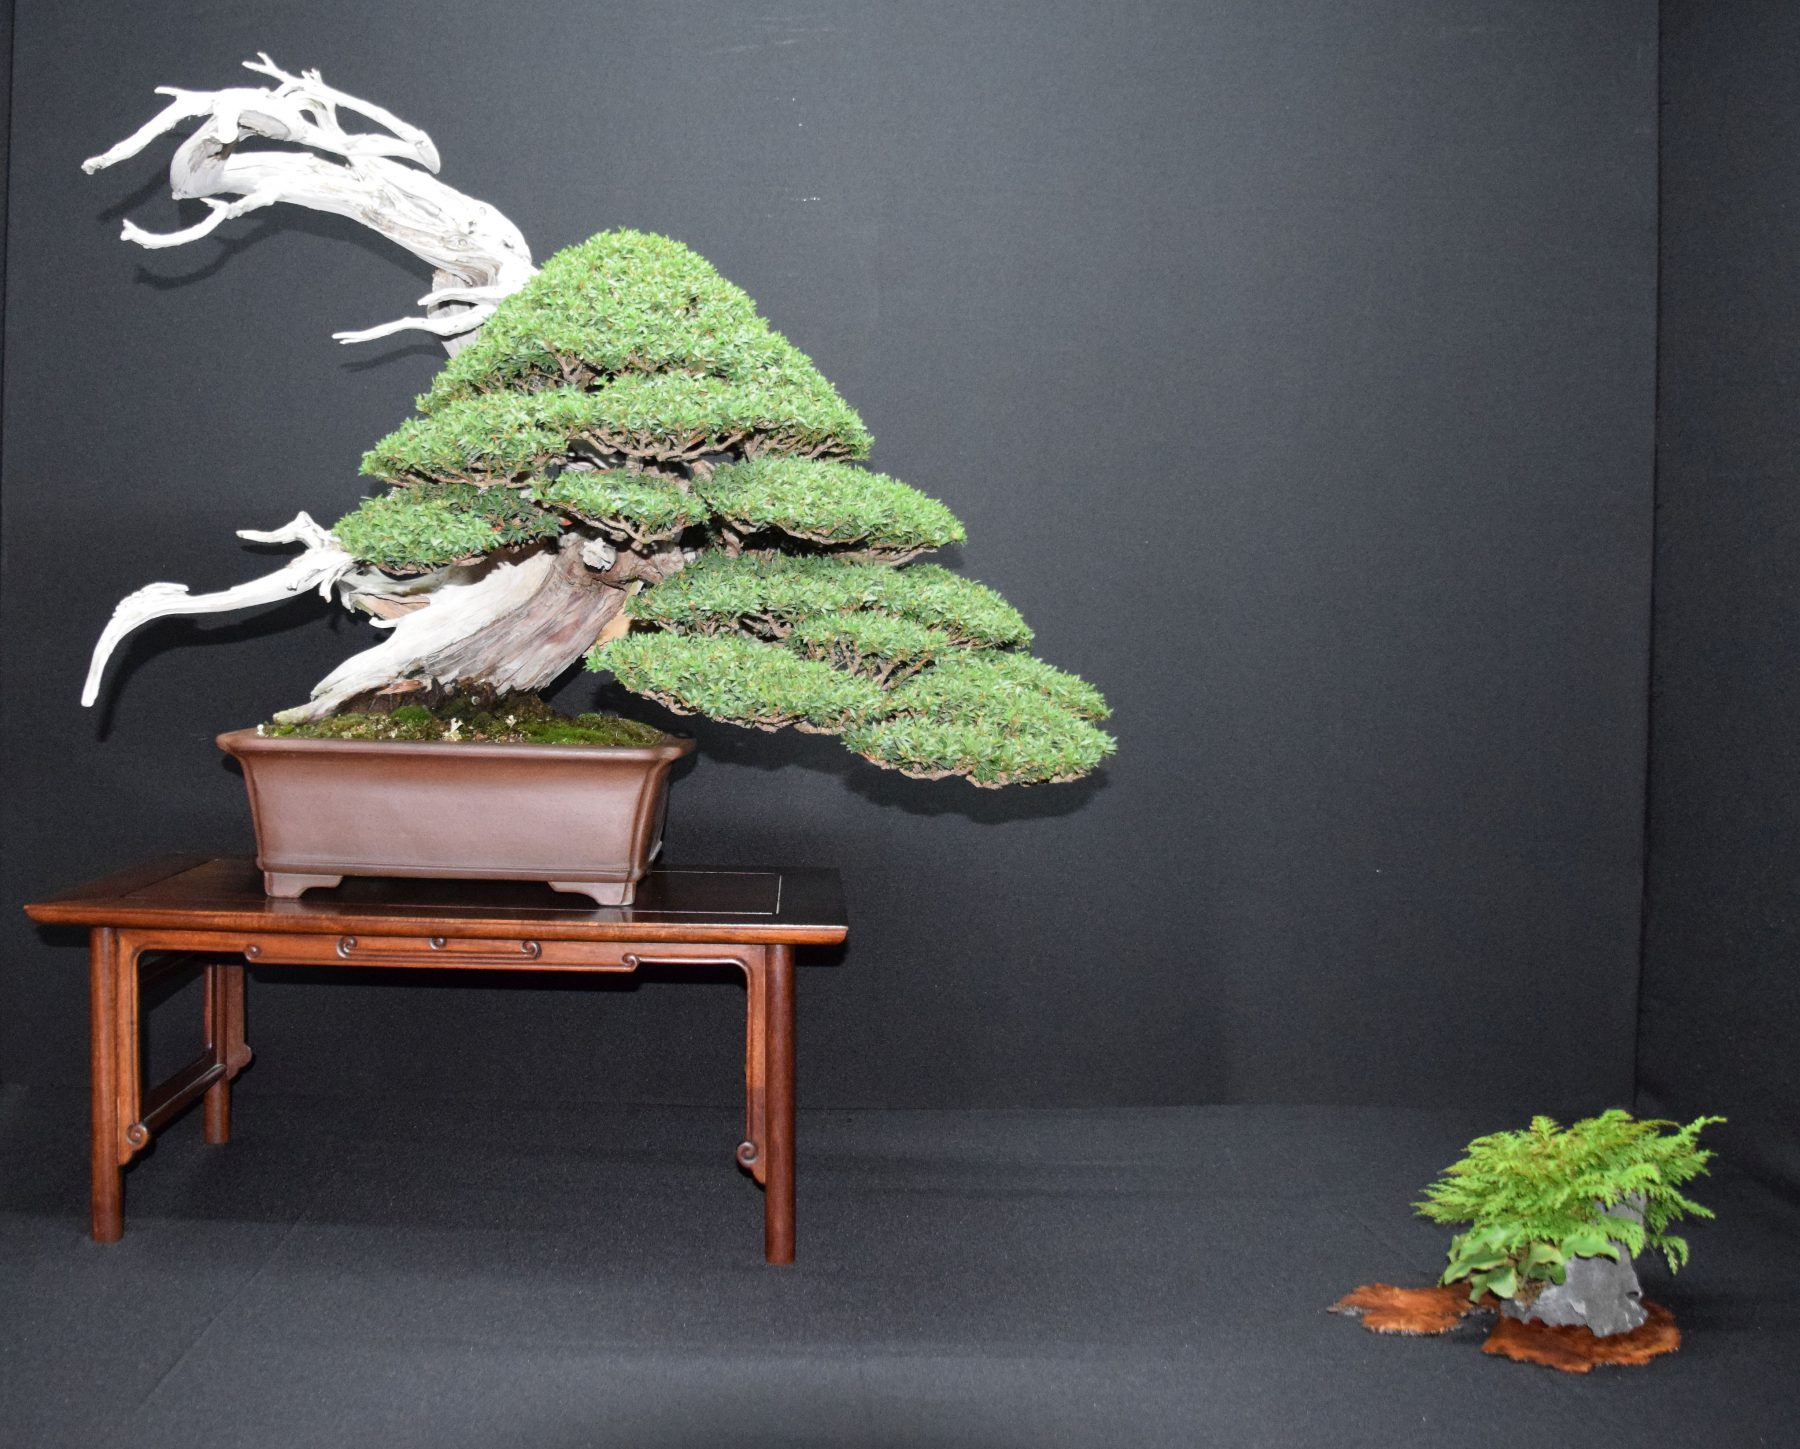 bonsai-museum-luis-vallejo-029